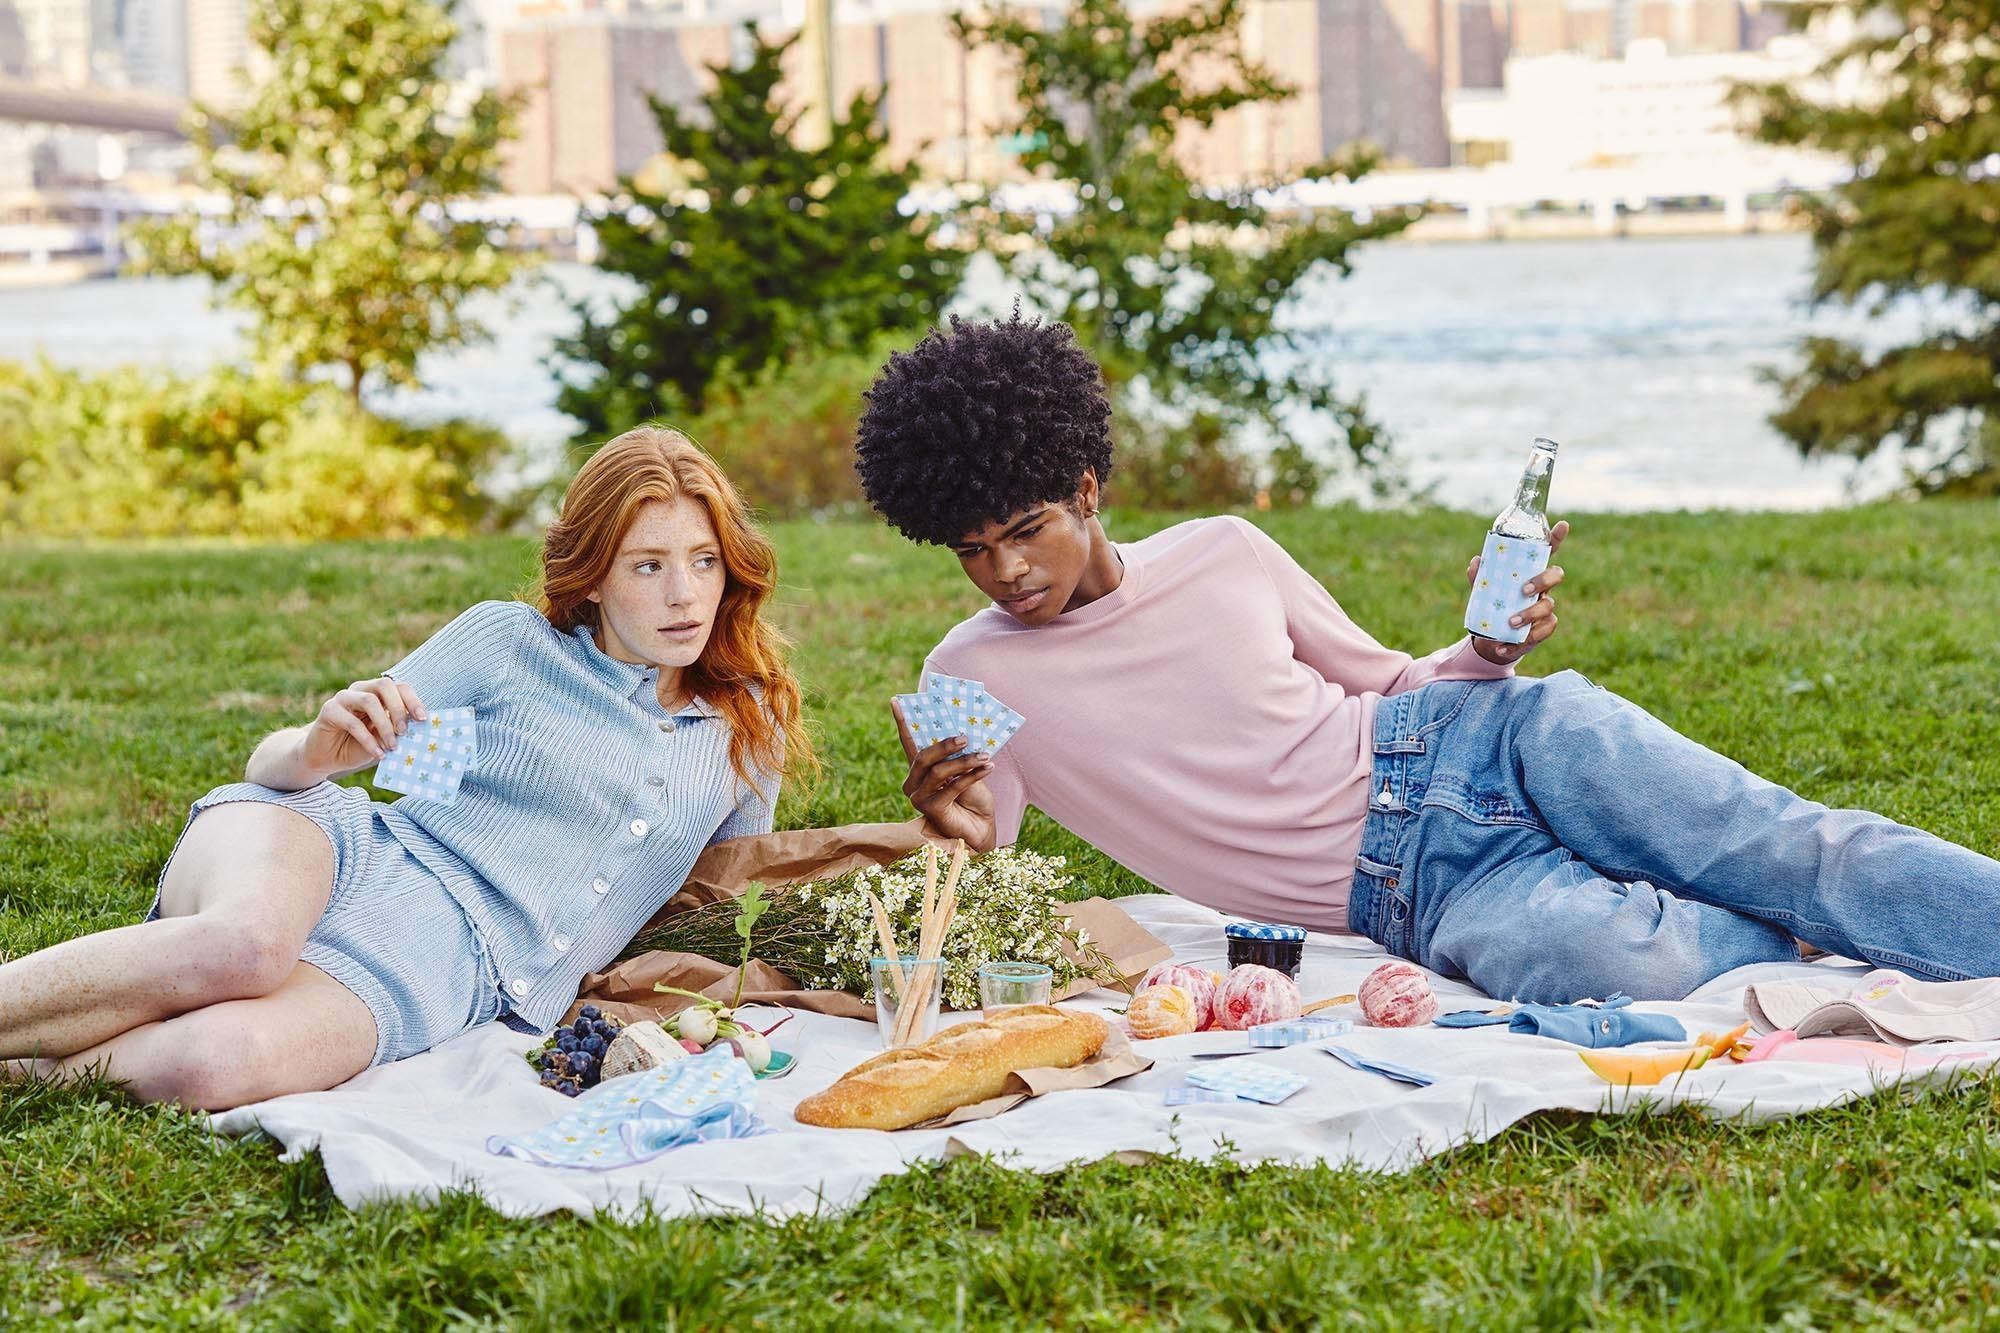 boy and girl playing cards and having a picnic in a park with NYC in background